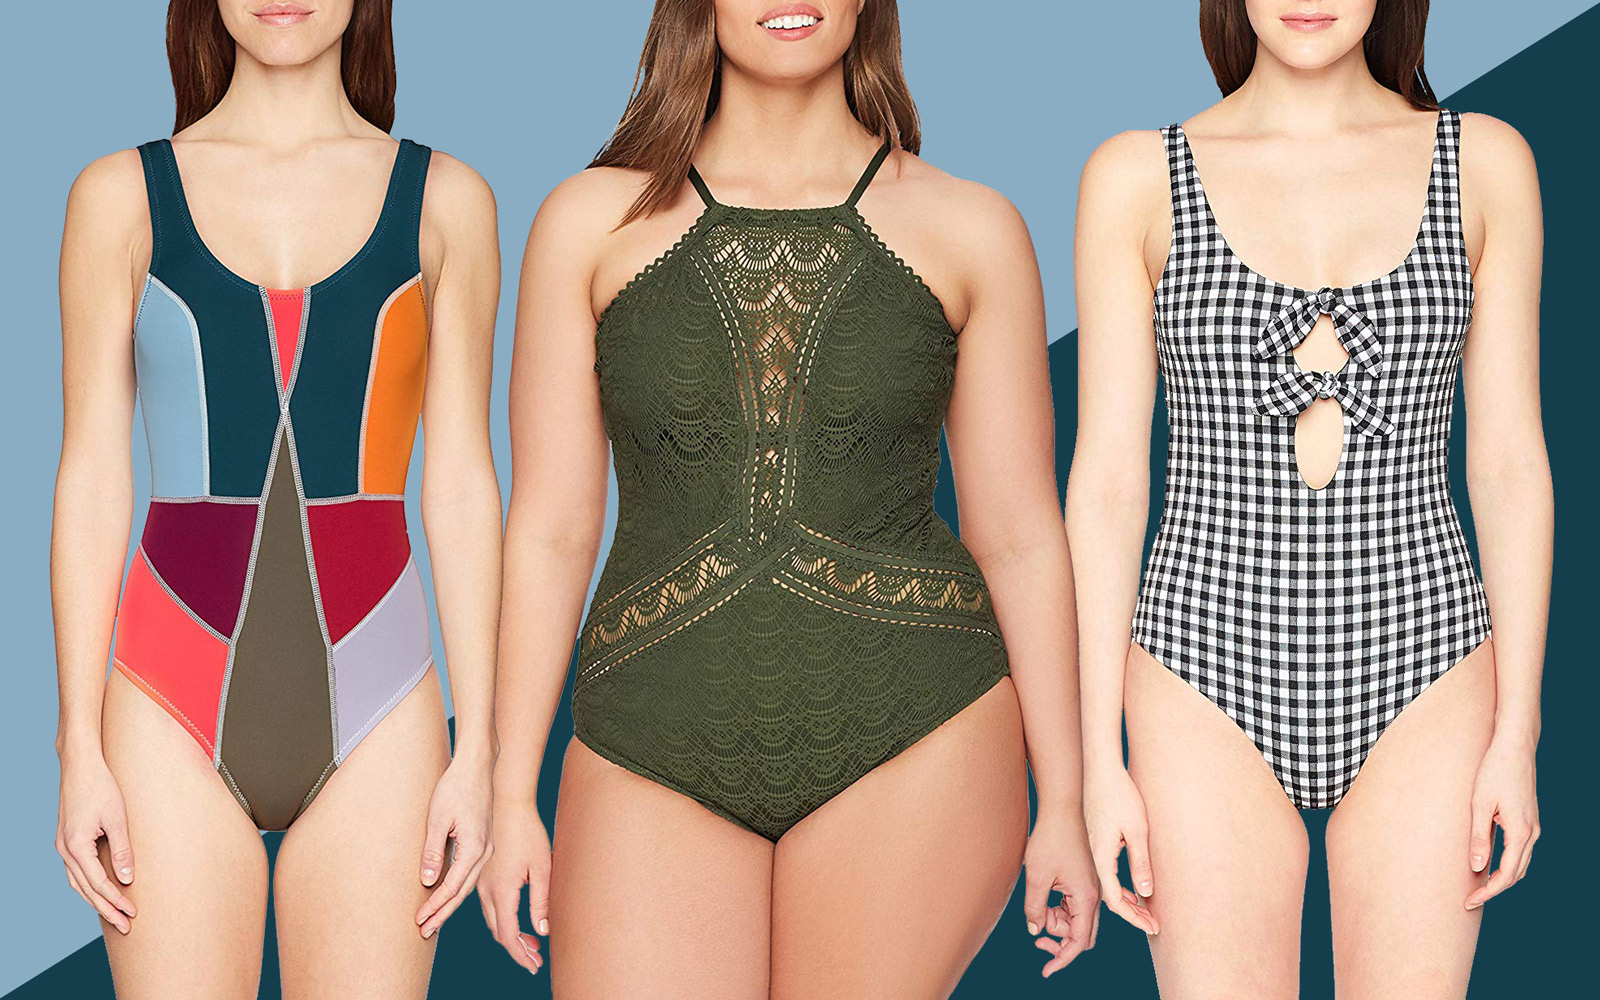 15 Cute Swimsuits You Won't Believe We Found on Amazon